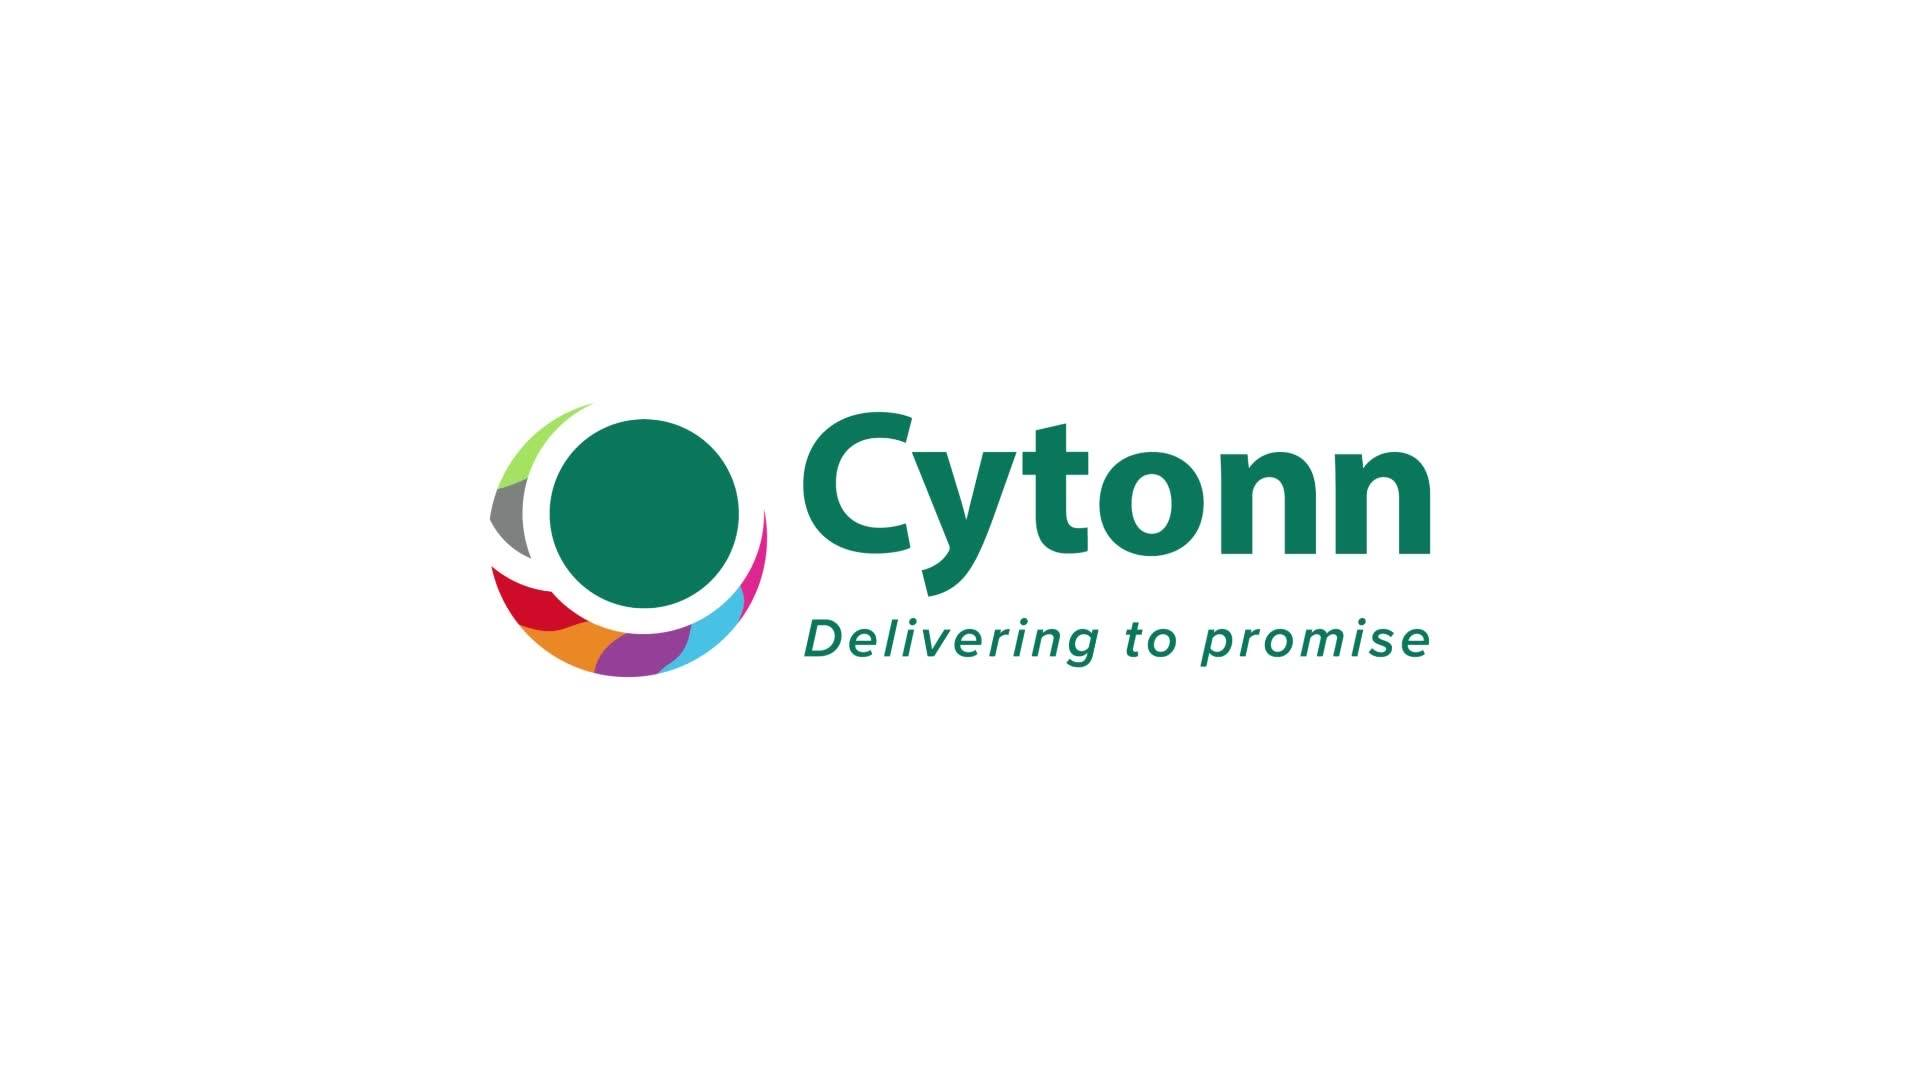 Working at Cytonn Investments, Job Interview Requirements and How to apply